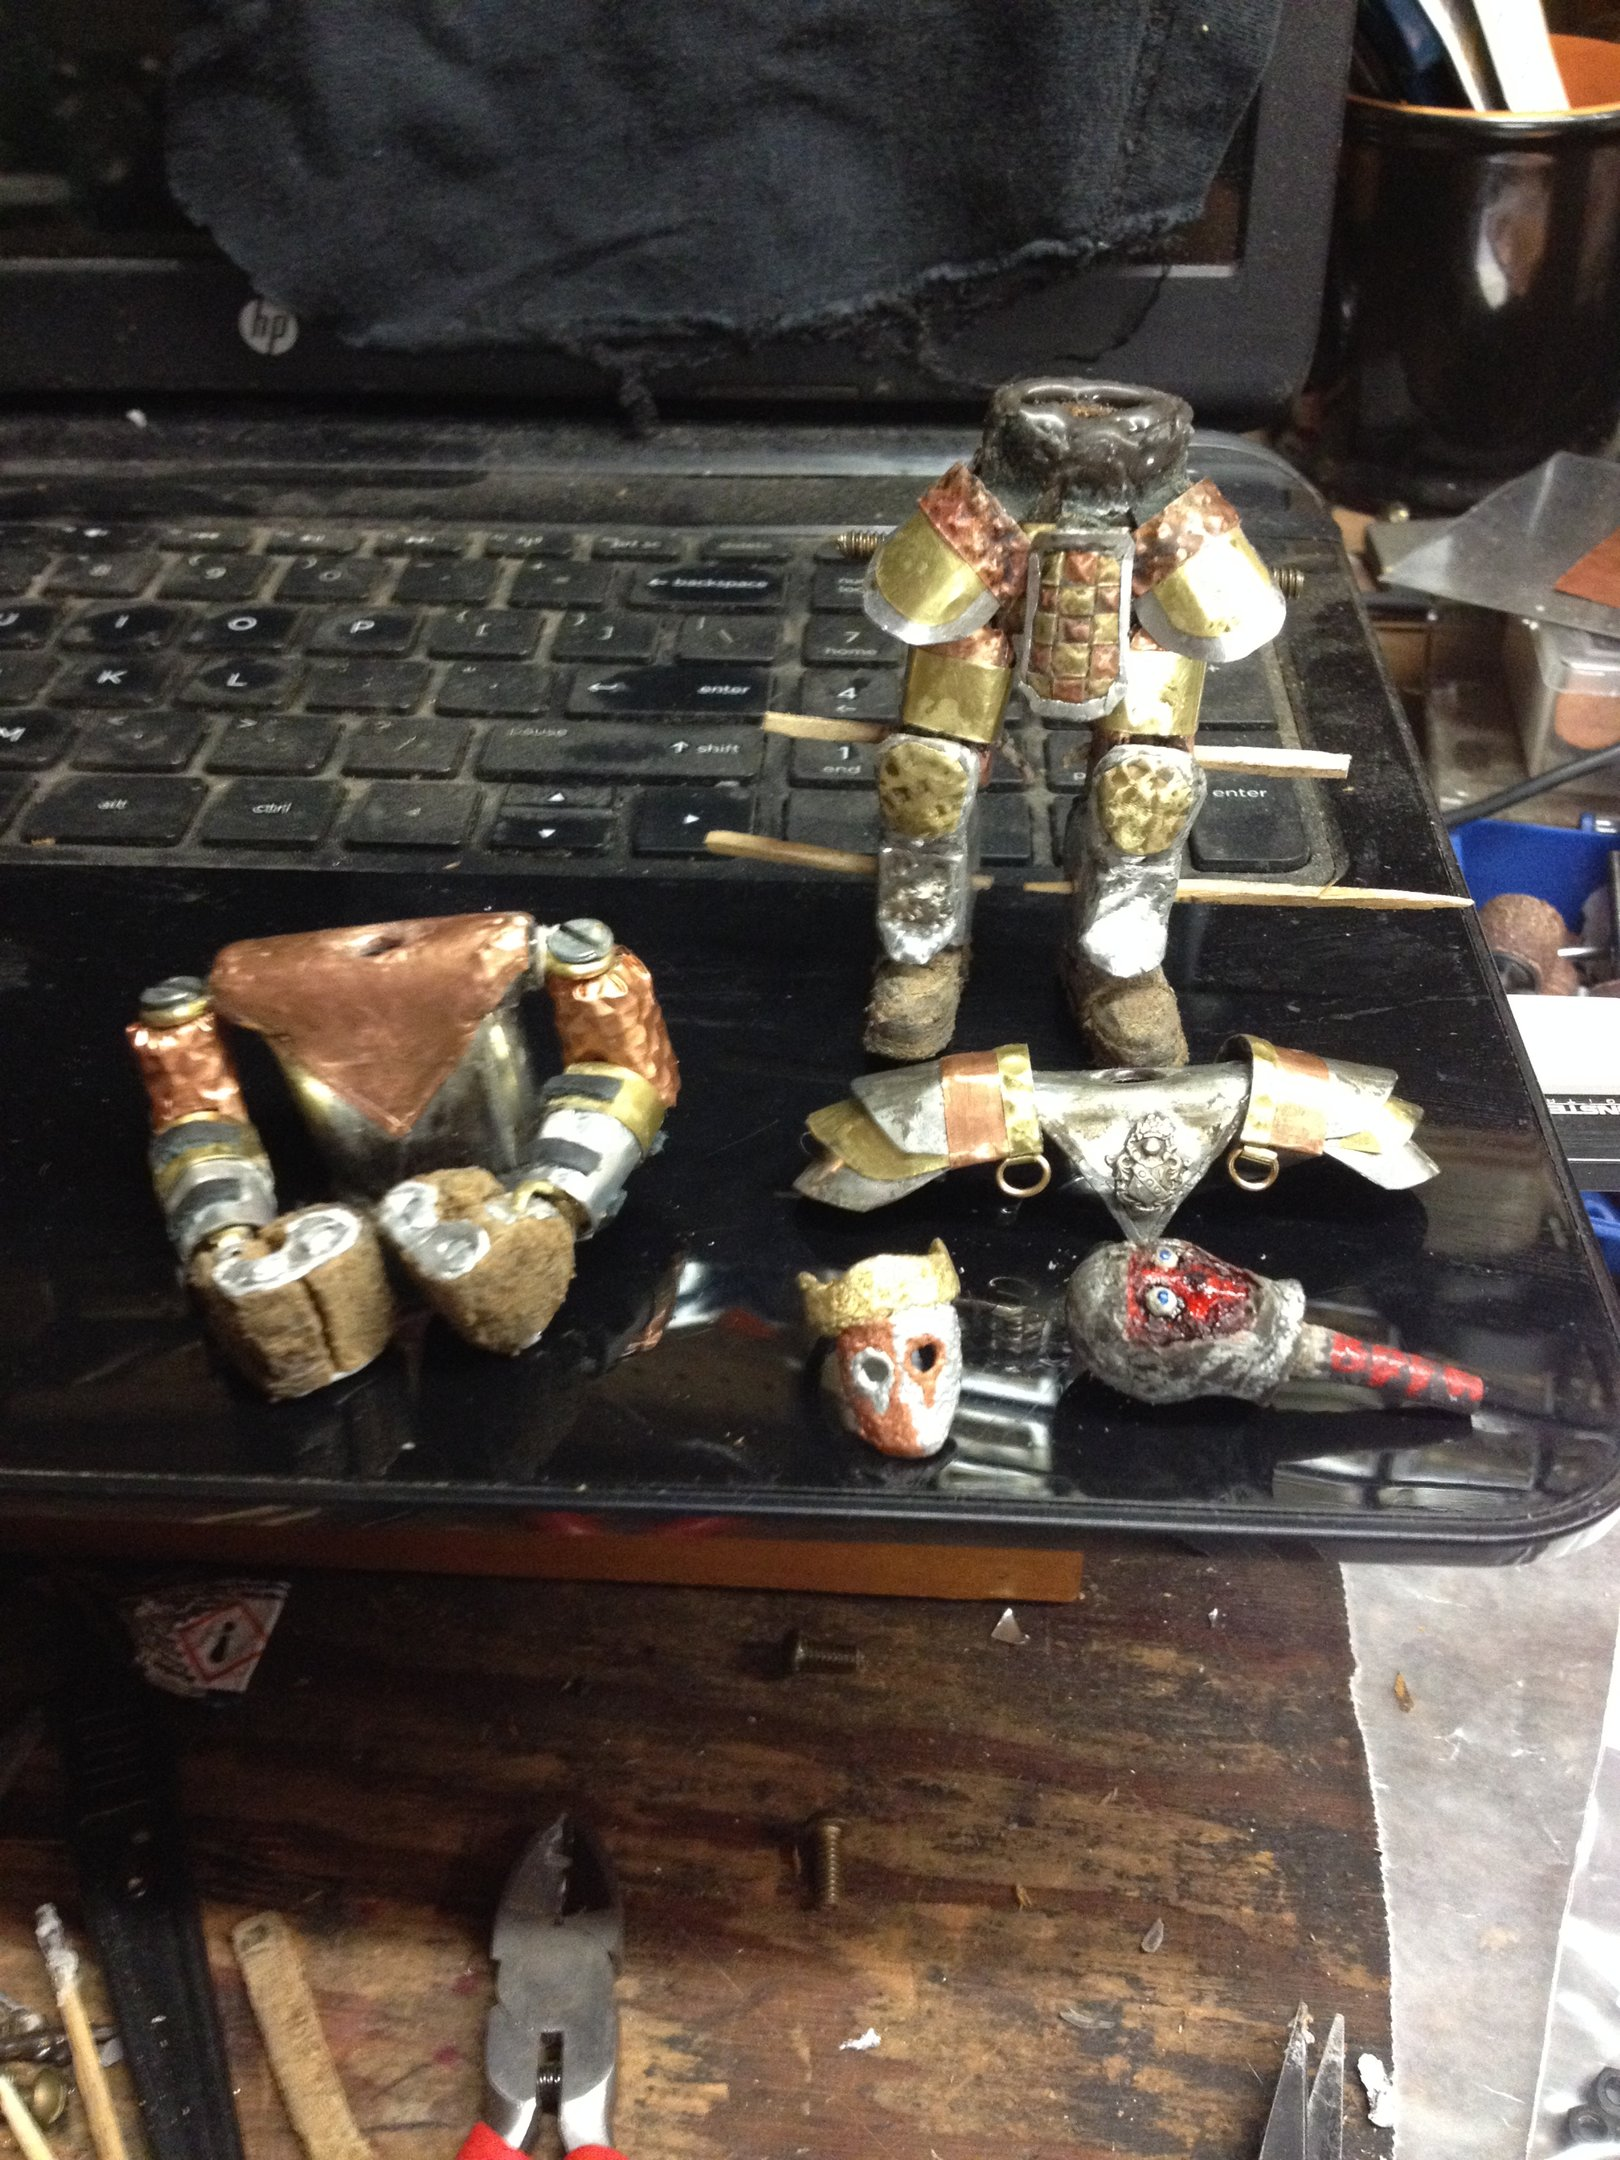 """img_0065-jpg.47147_The Faceless King (Bespoke 4"""" articulated action figure)_Art & Music_Squat the Planet_12:34 AM"""